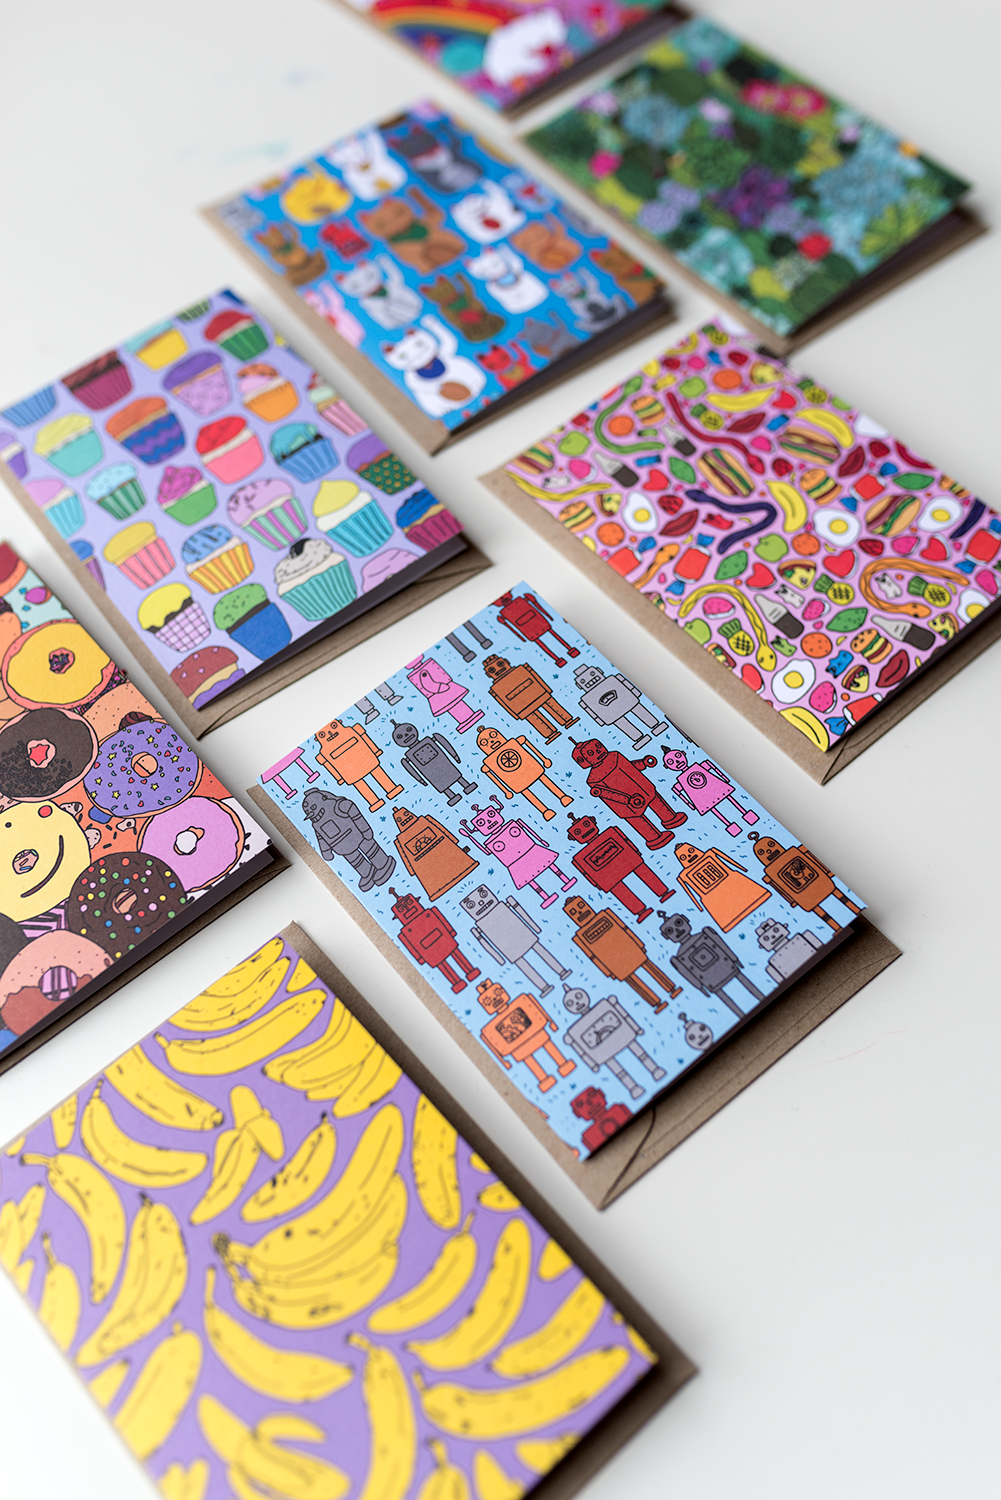 Some of the cards Tegan's designed for AHD Paper & Co. Photo © Susan Fitzgerald 2017.